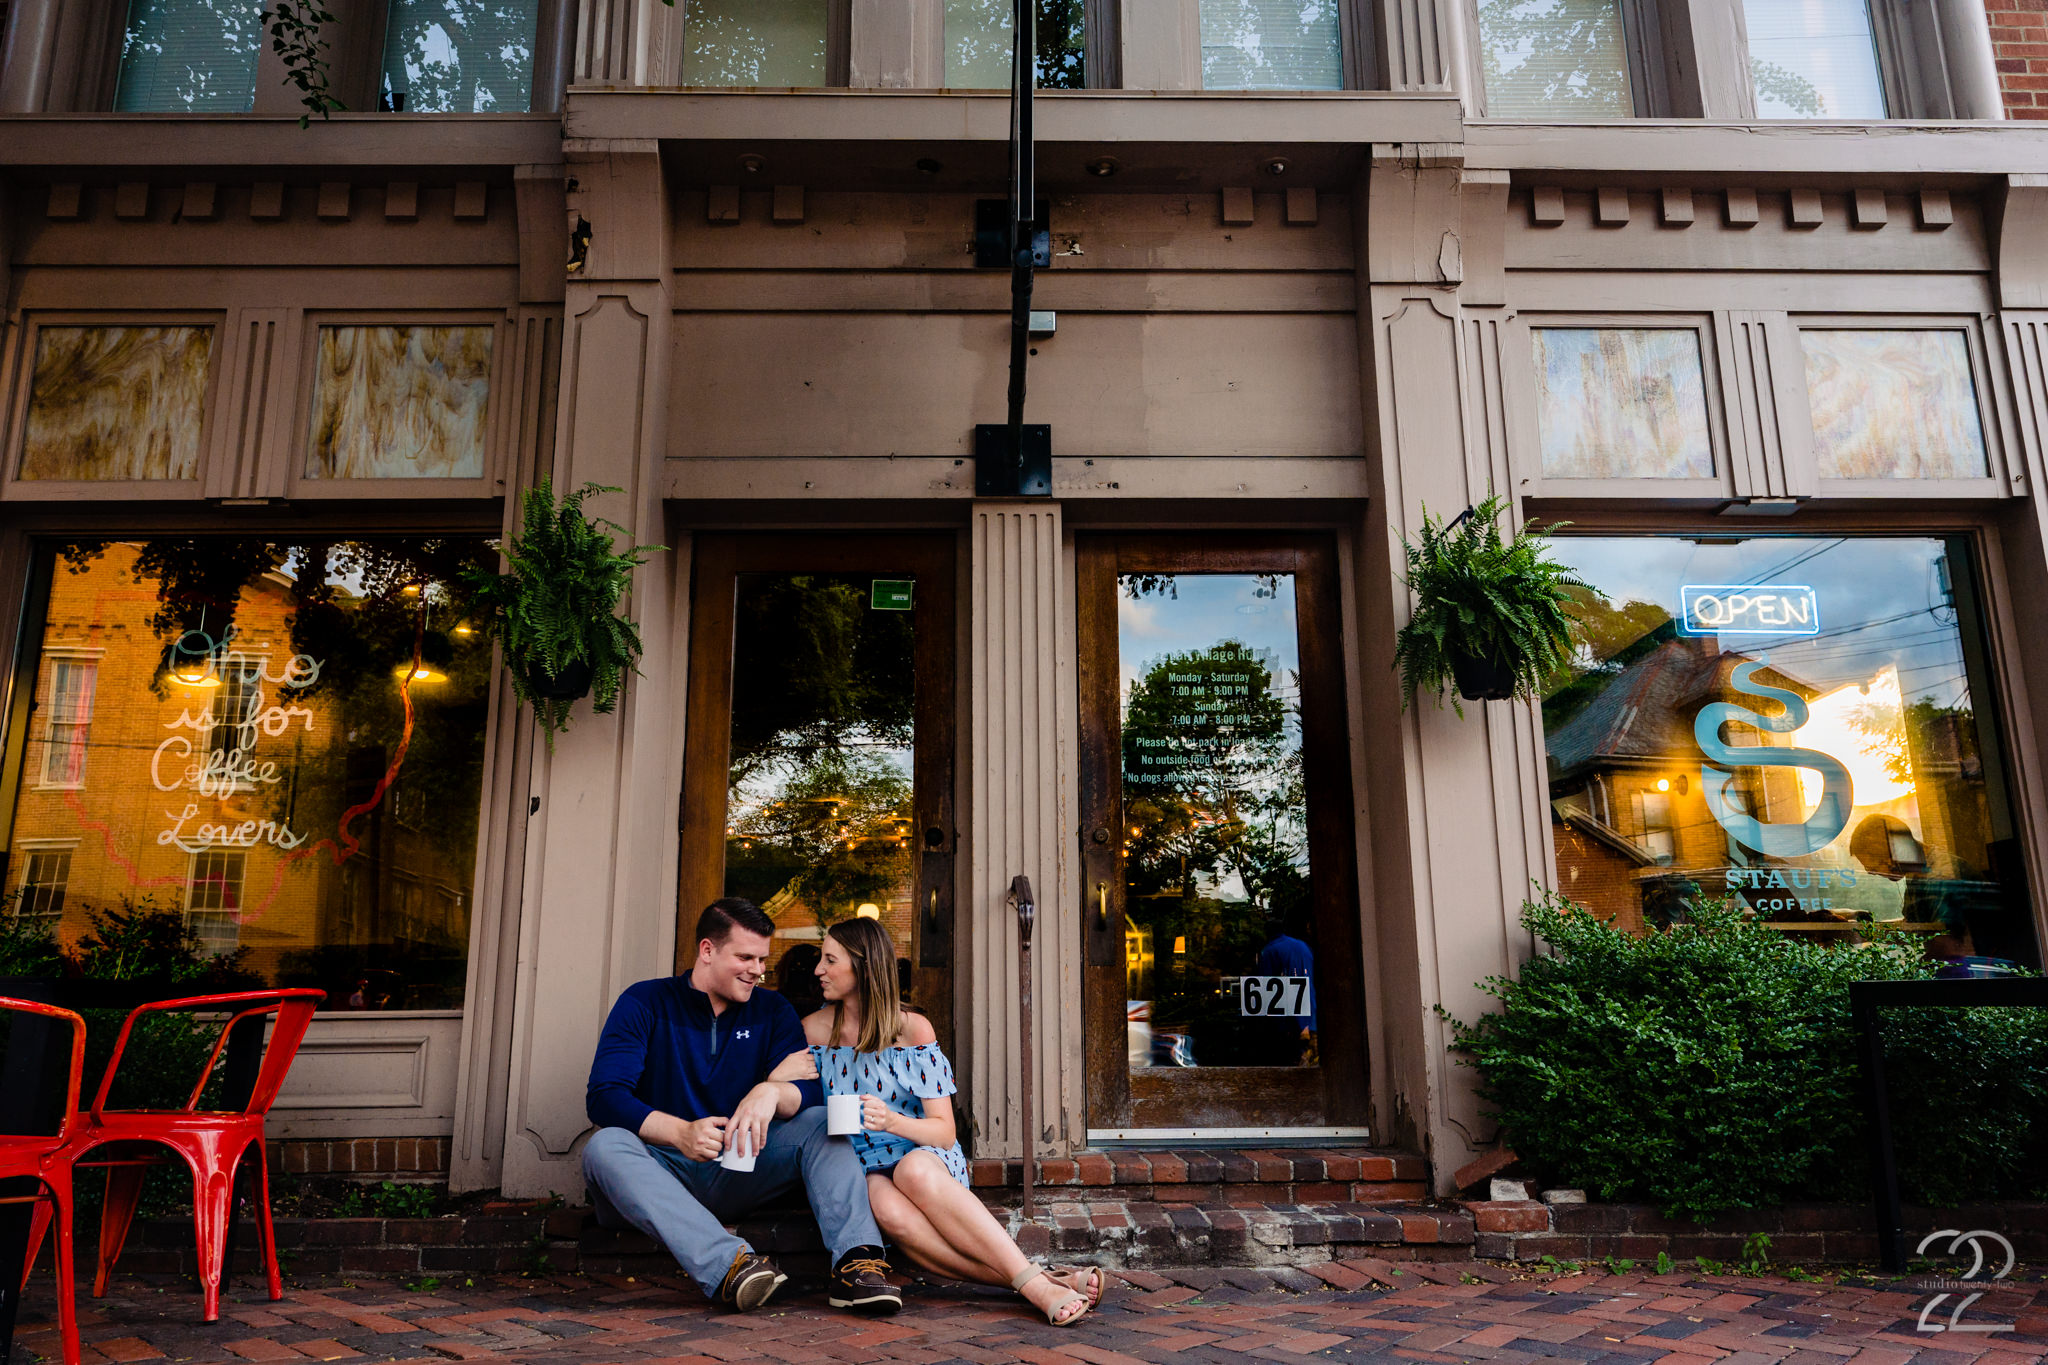 The German Village in Columbus is a great place to explore. Studio 22 loved just capturing relaxed photos of these two while they enjoyed a cup of coffee on a break in the engagement photos.